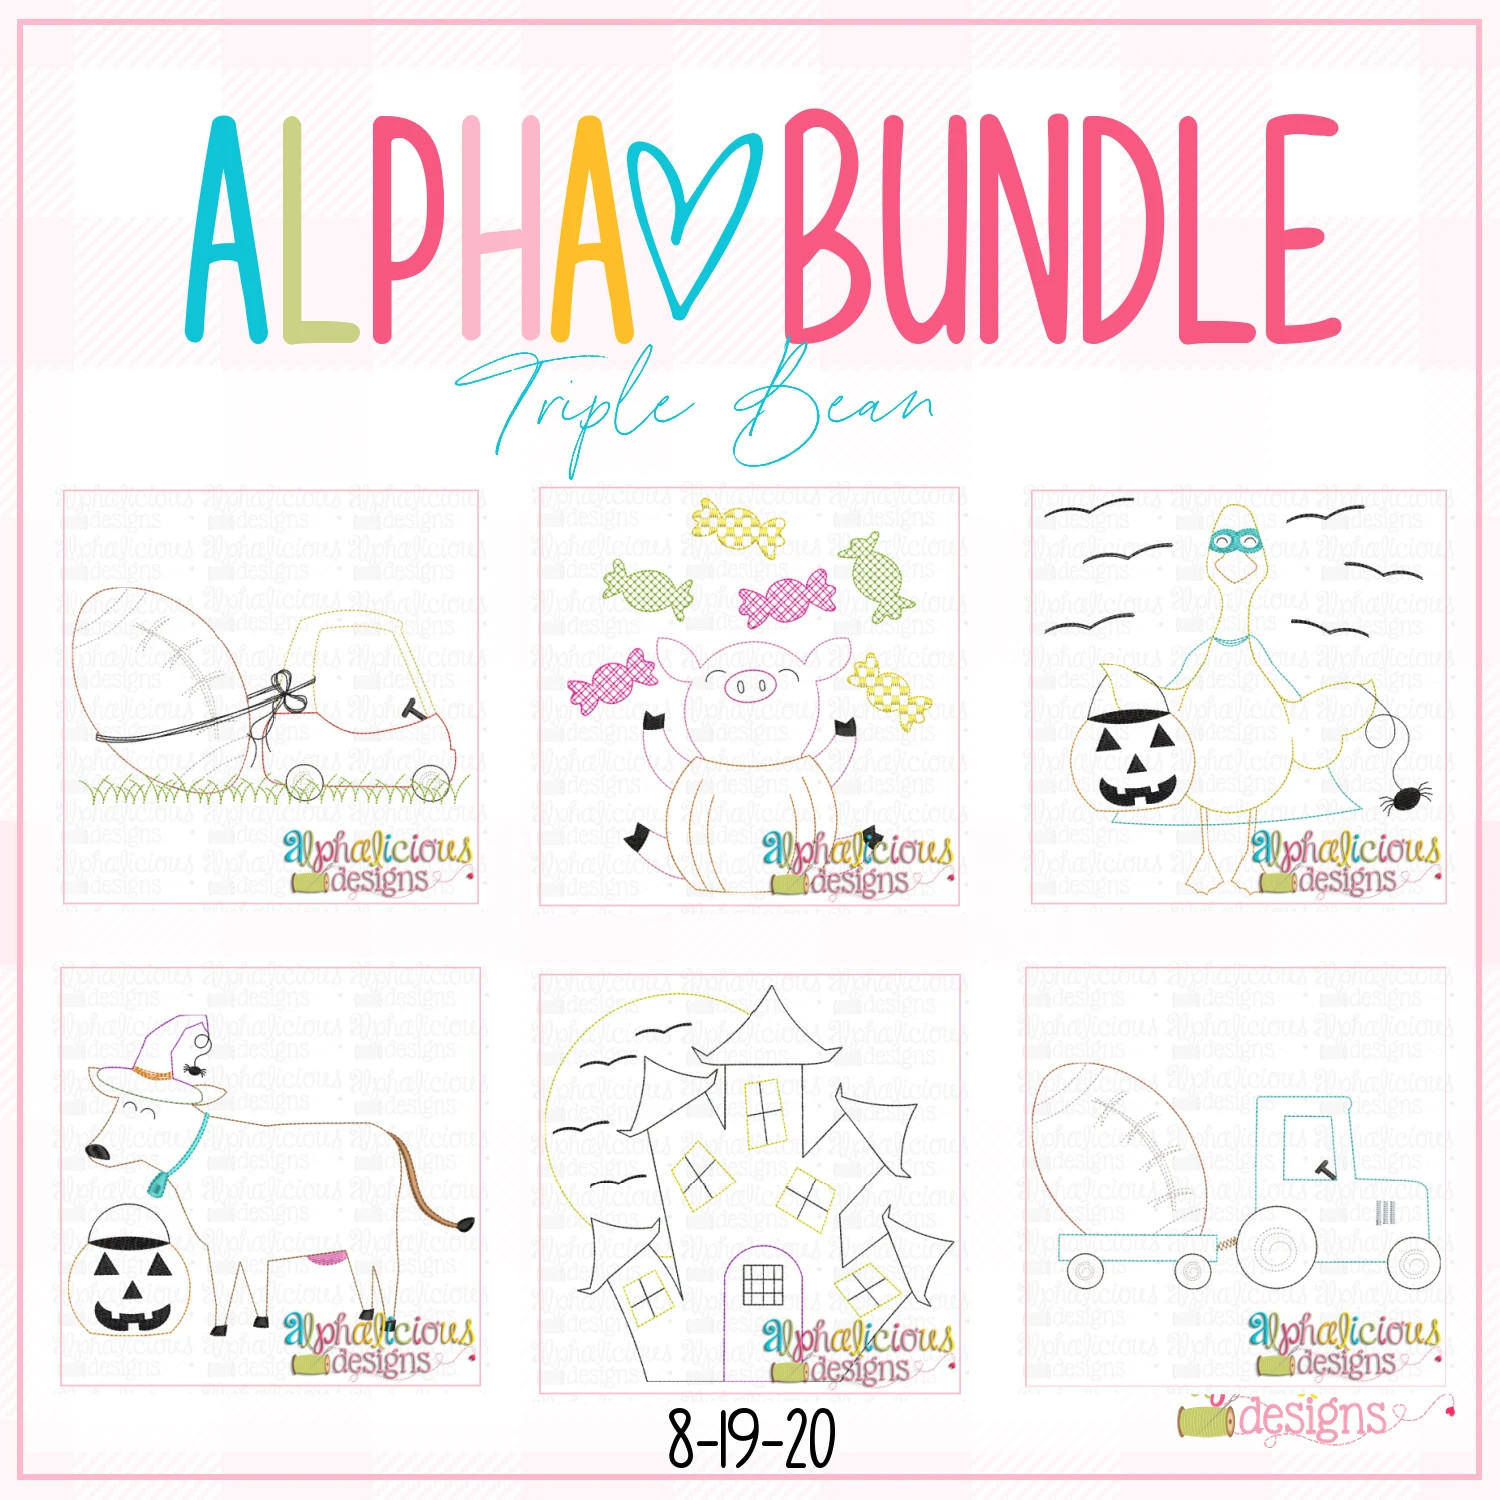 ALPHA BUNDLE-8/19/20 Release-Triple Bean Stitch